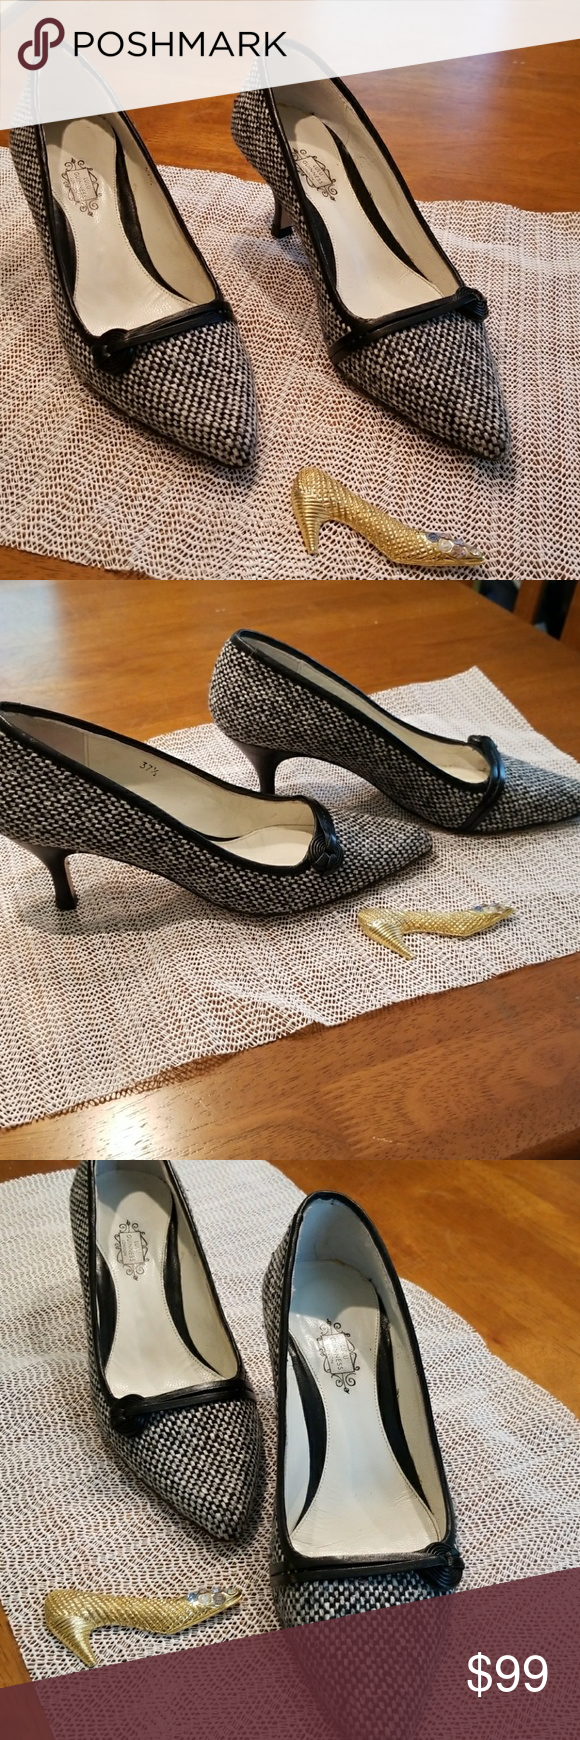 final sale lulu guinness london shoes (With images